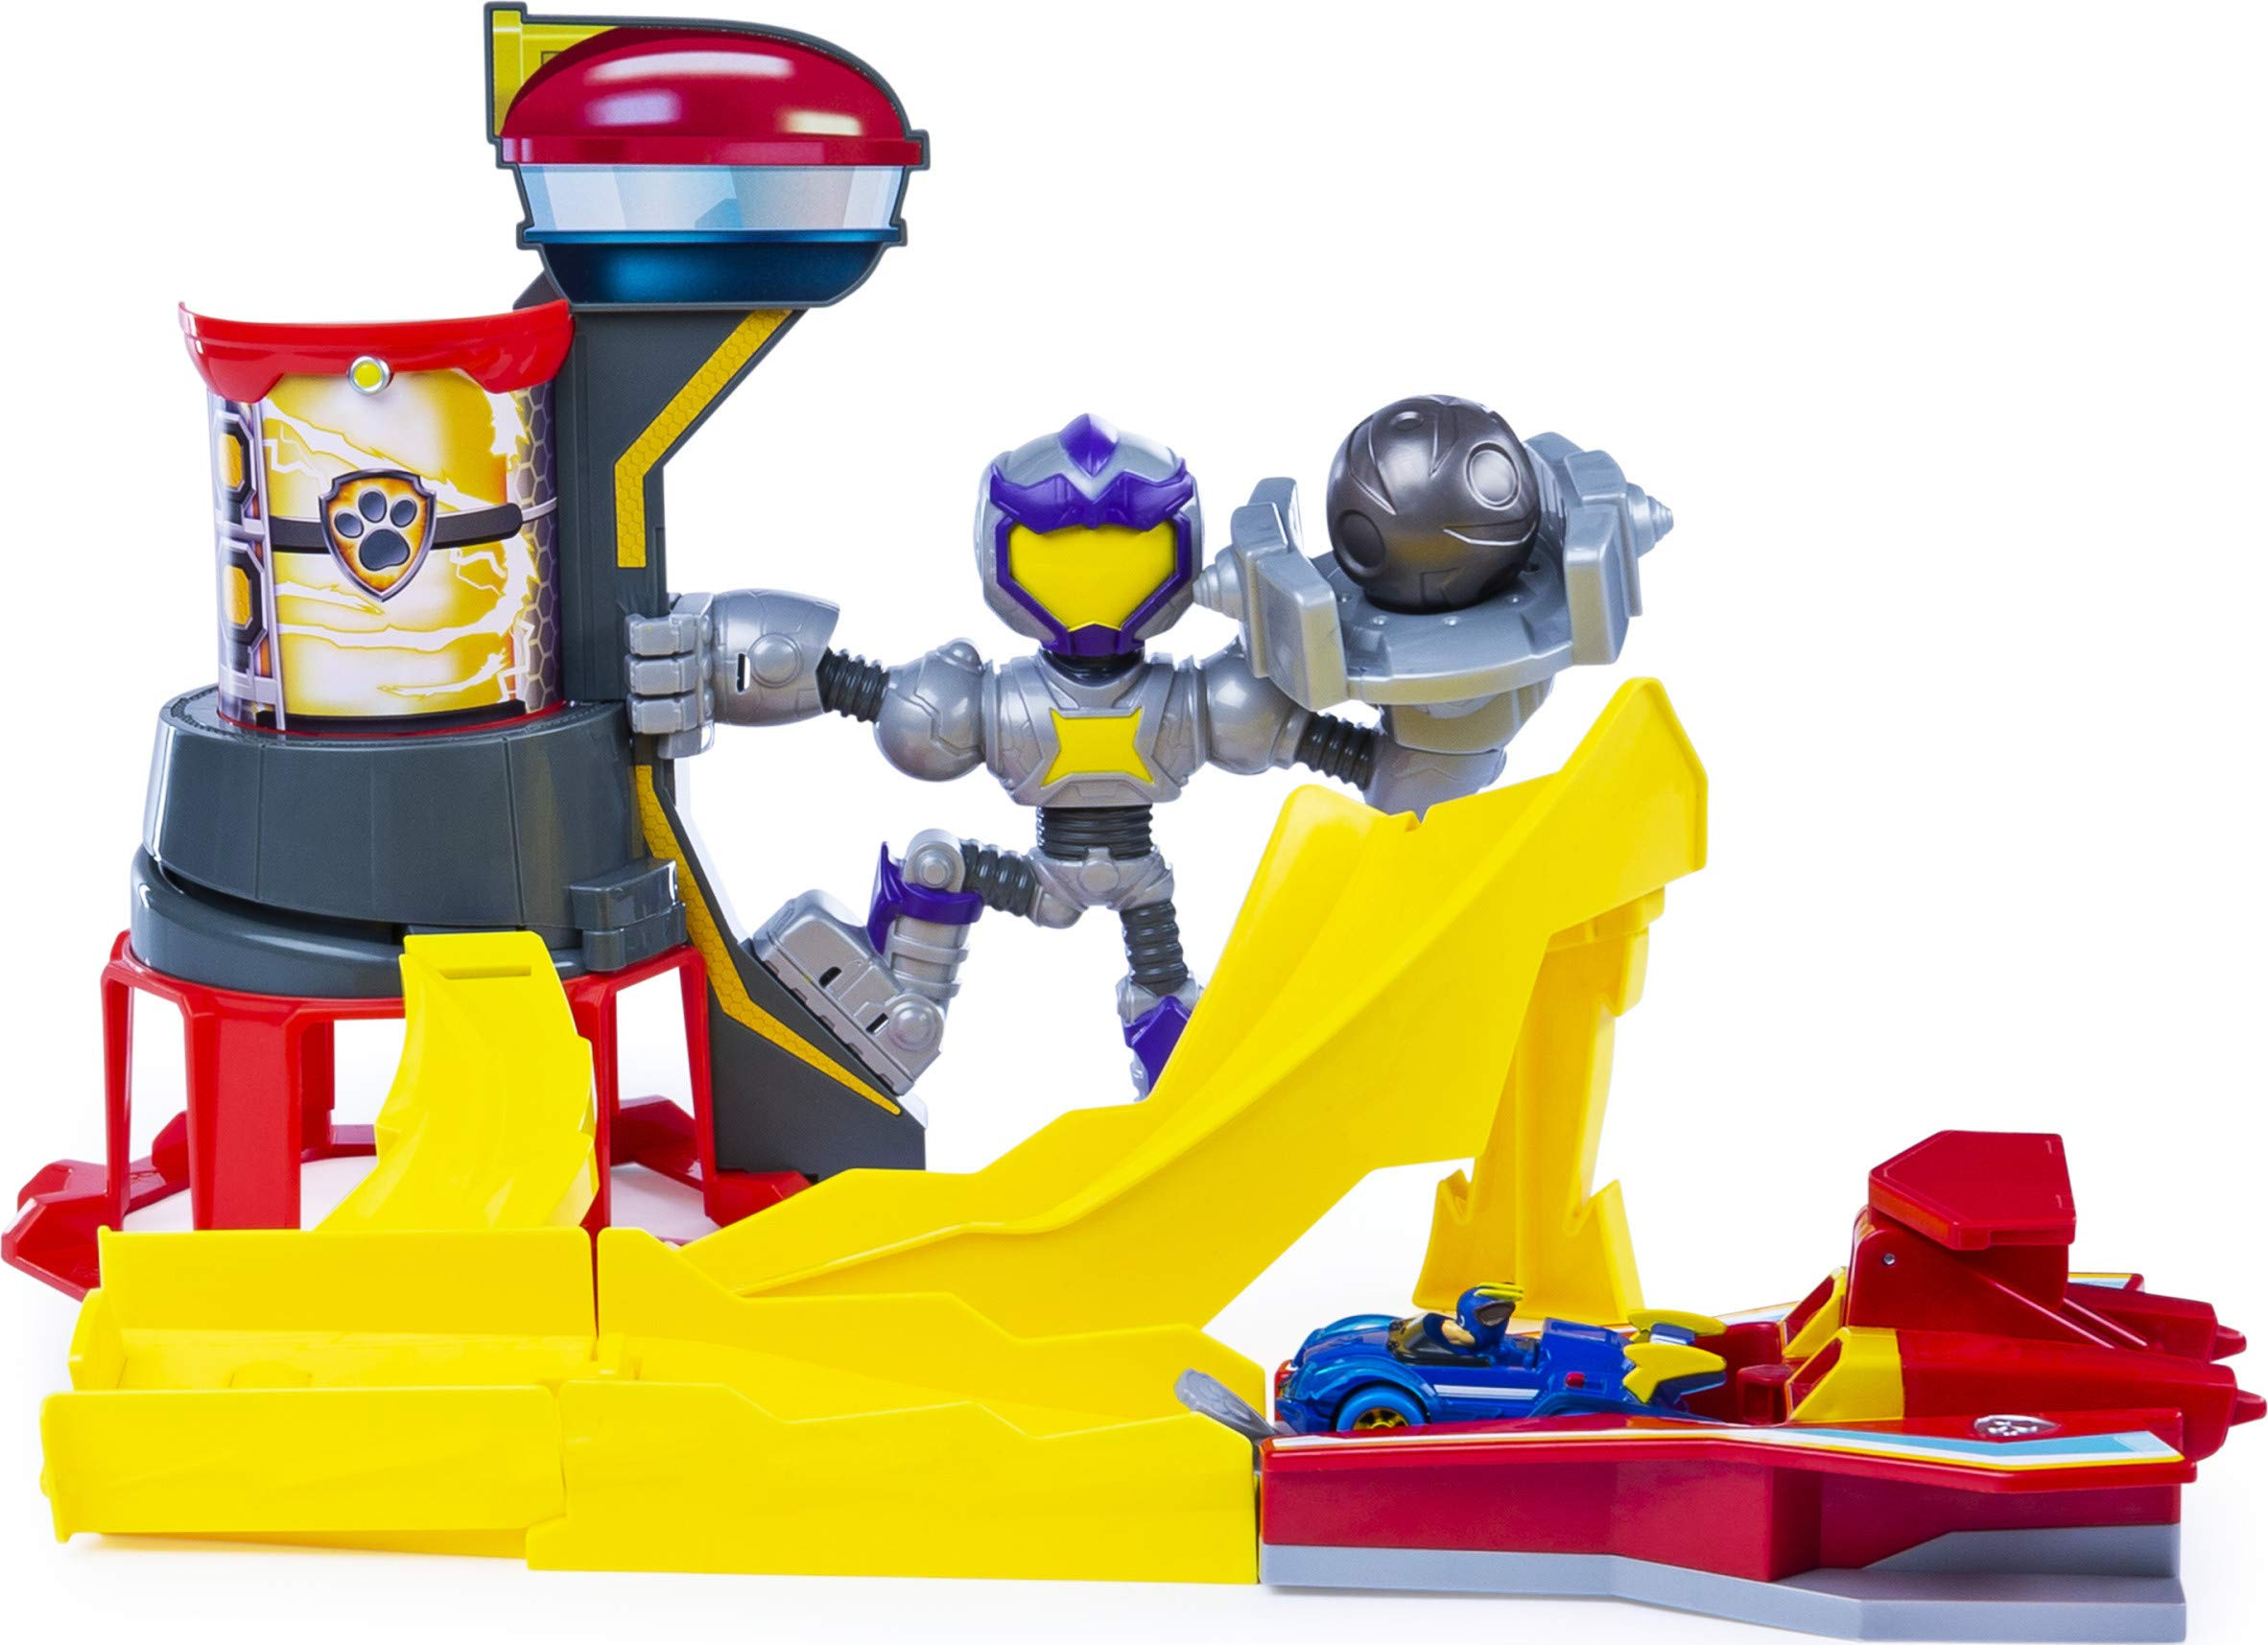 PAW Patrol True Metal Mighty Meteor Die-Cast Track Set with Exclusive Chase Vehicle, 1:55 Scale